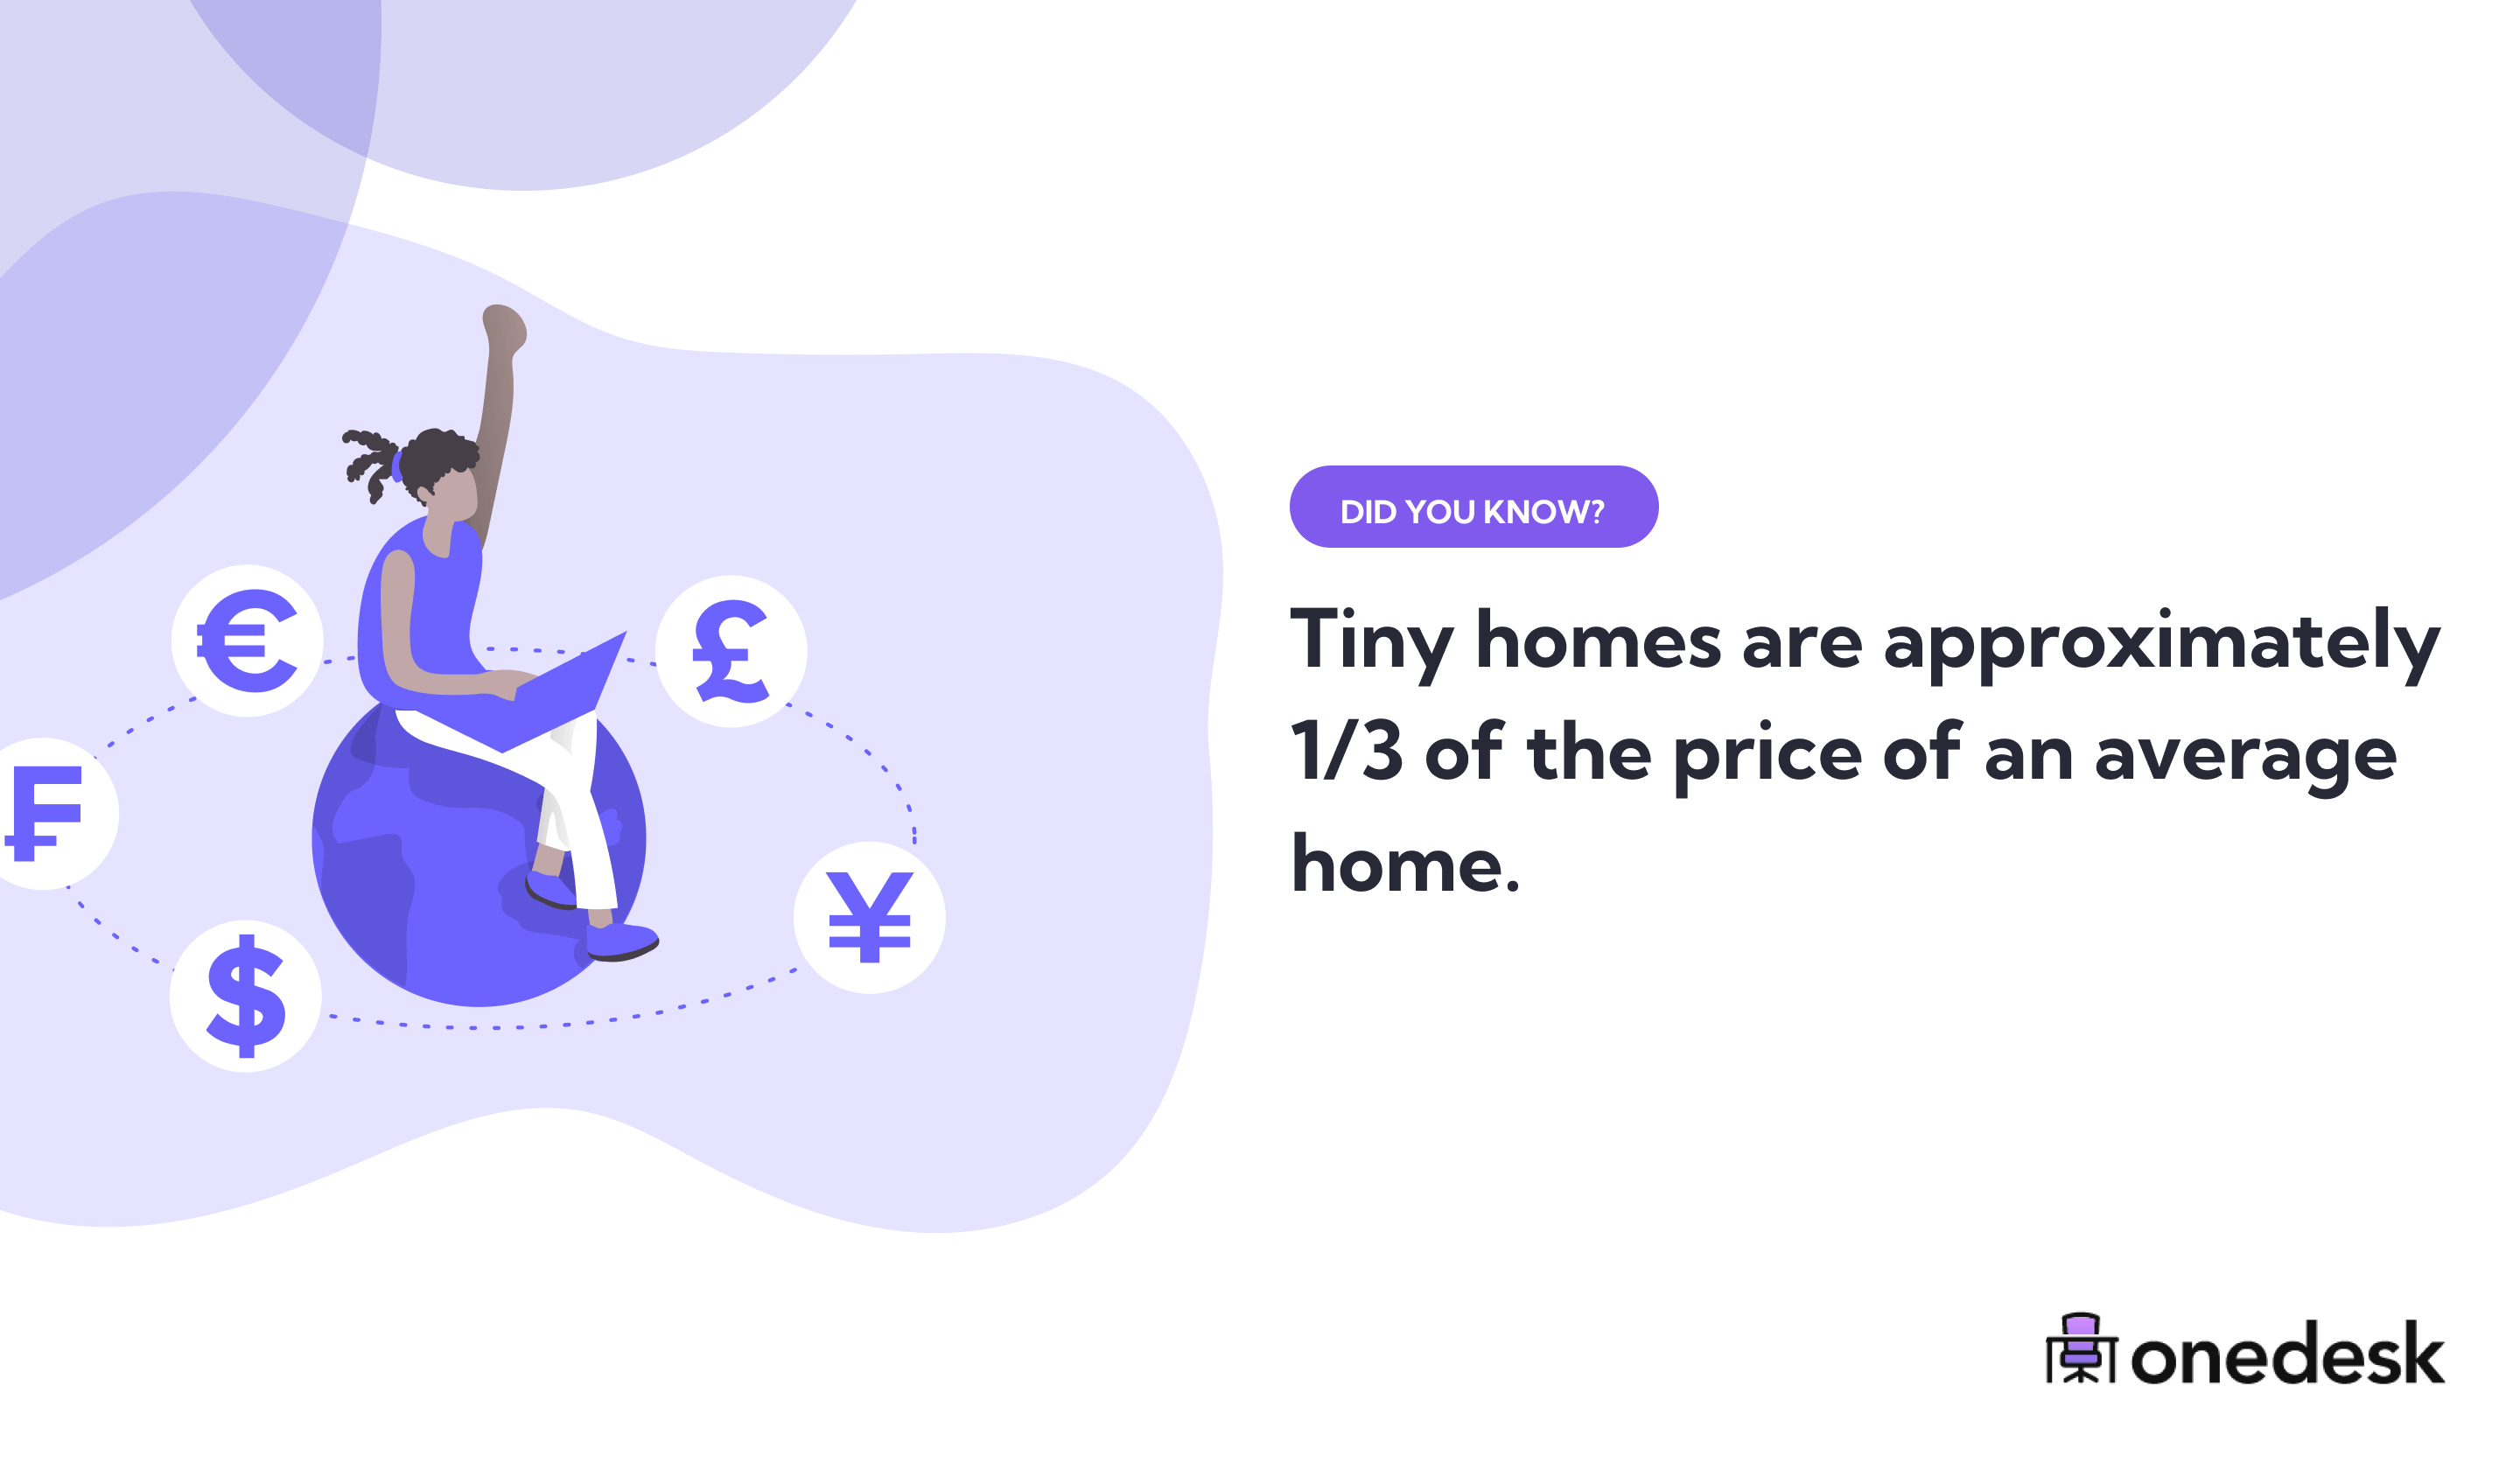 tiny homes cost 1/3 the price of regular homes